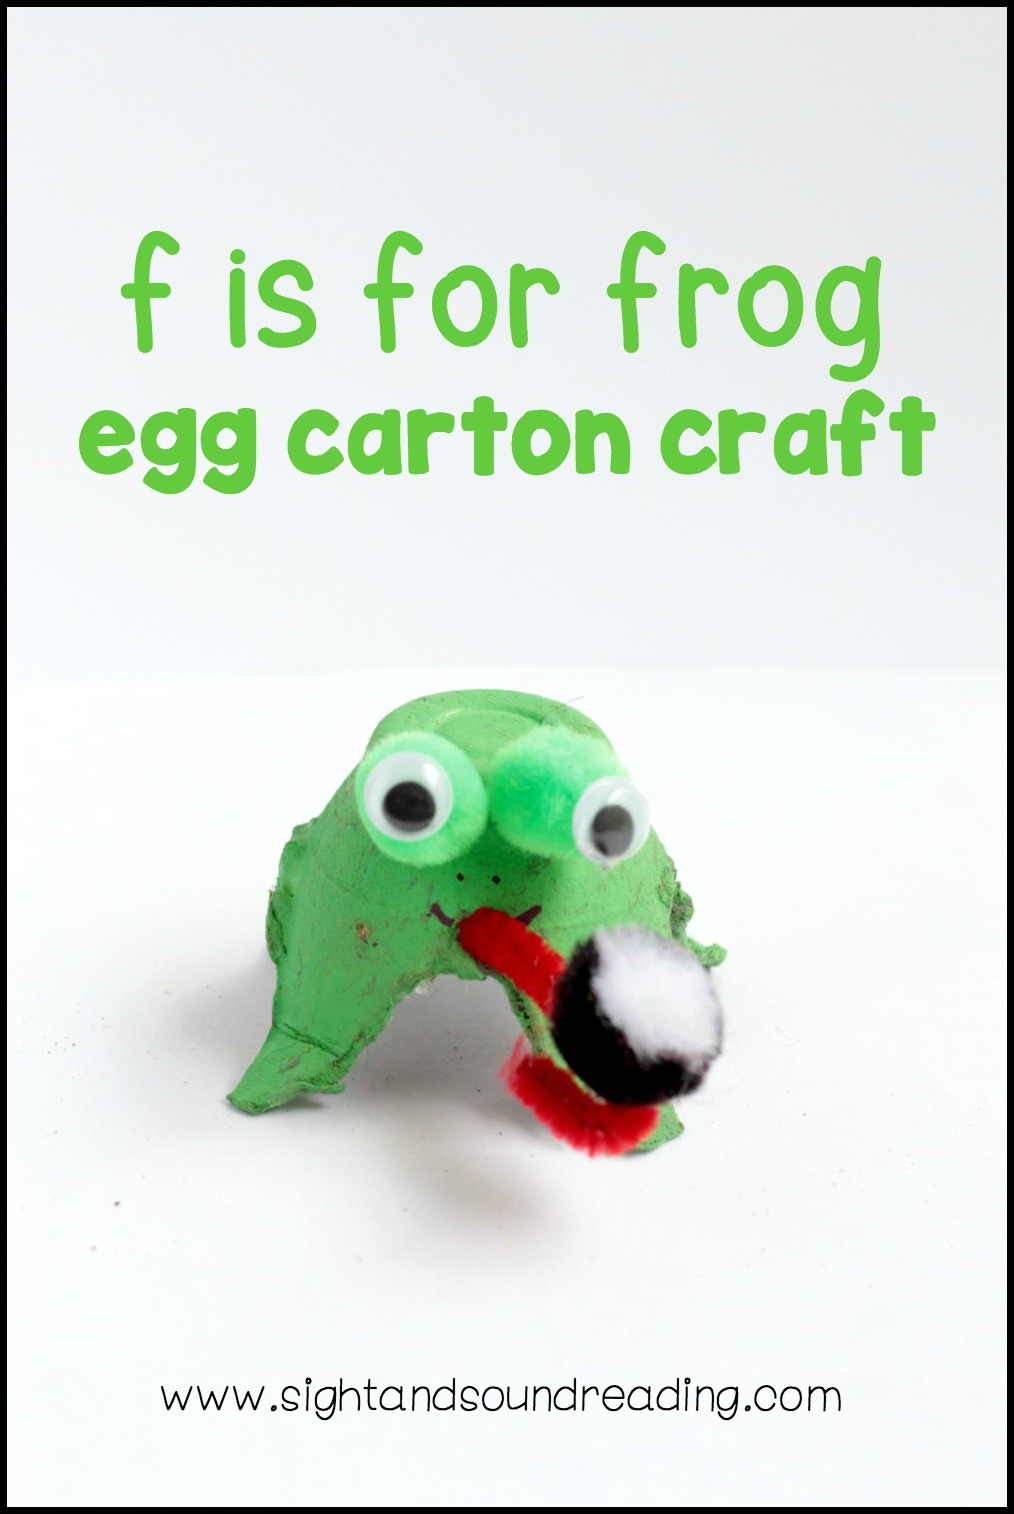 Letter f craft to make frog egg carton craft is a fun way to help teach kids about the letter F. This craft would make the perfect to learn about letter F.